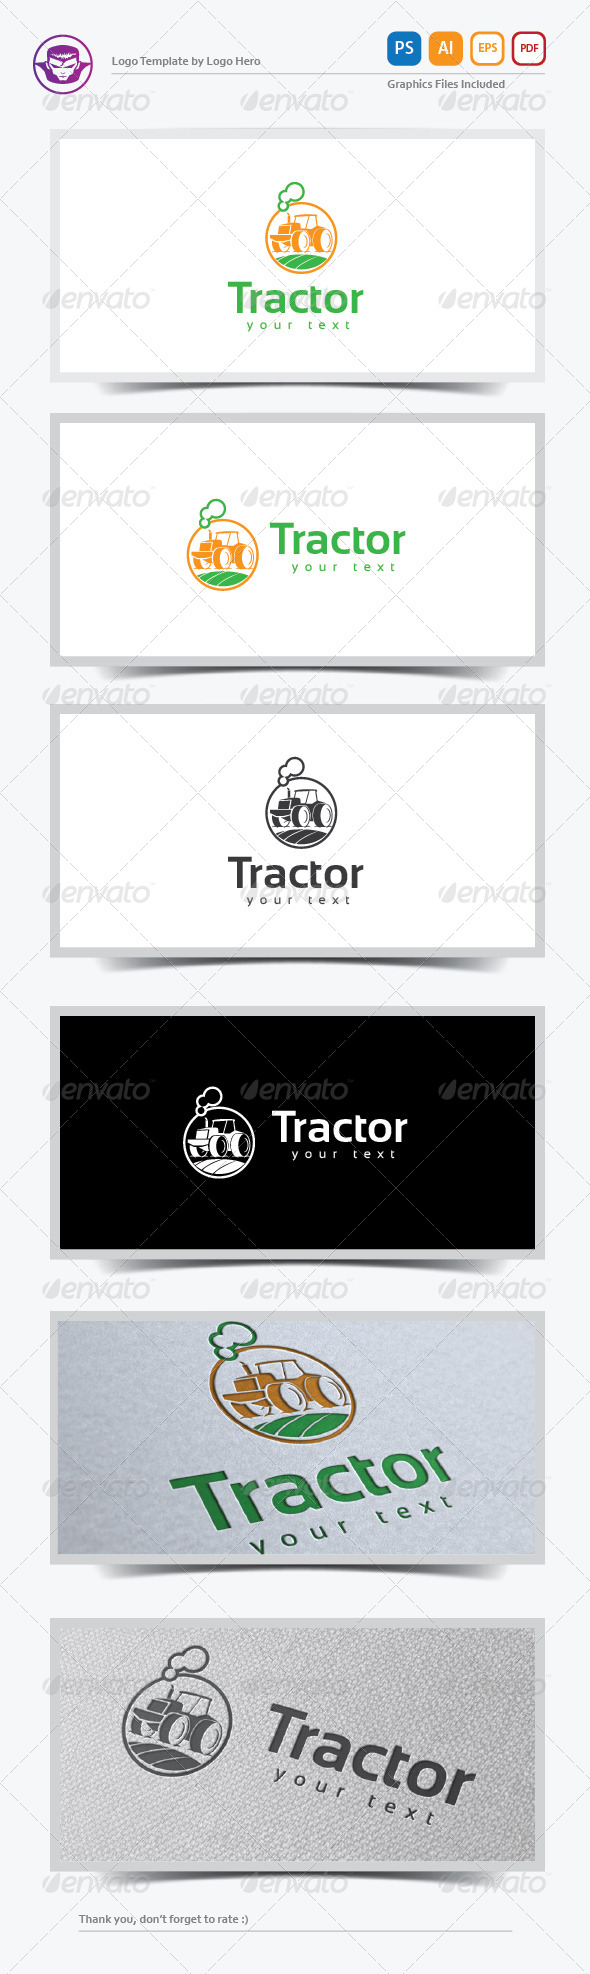 GraphicRiver Tractor Logo Template 8234279